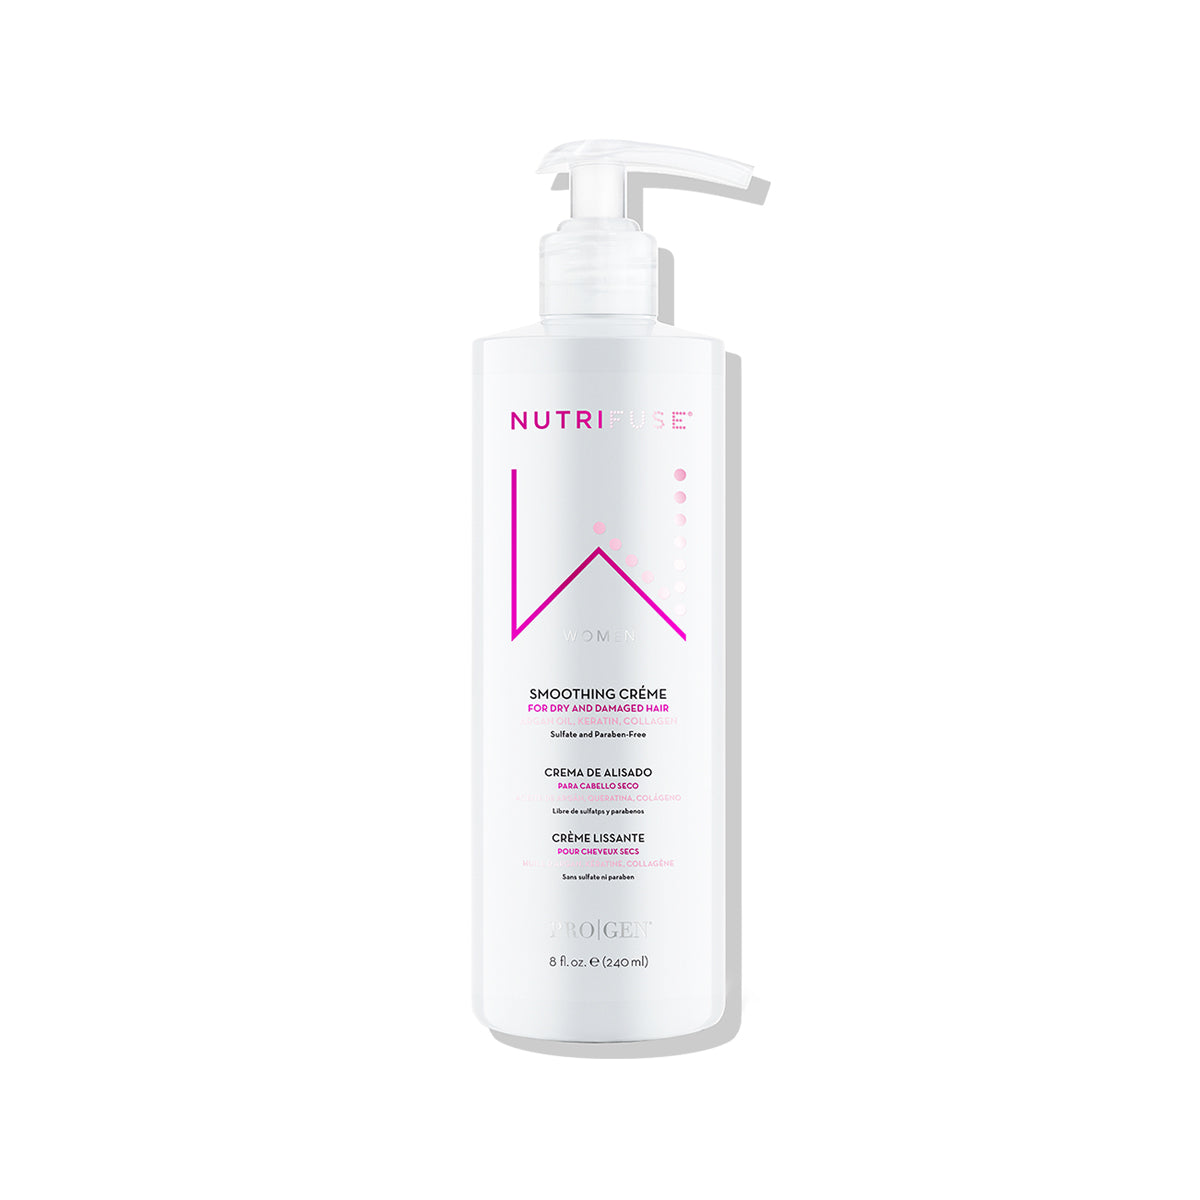 240ml smoothing creme for women